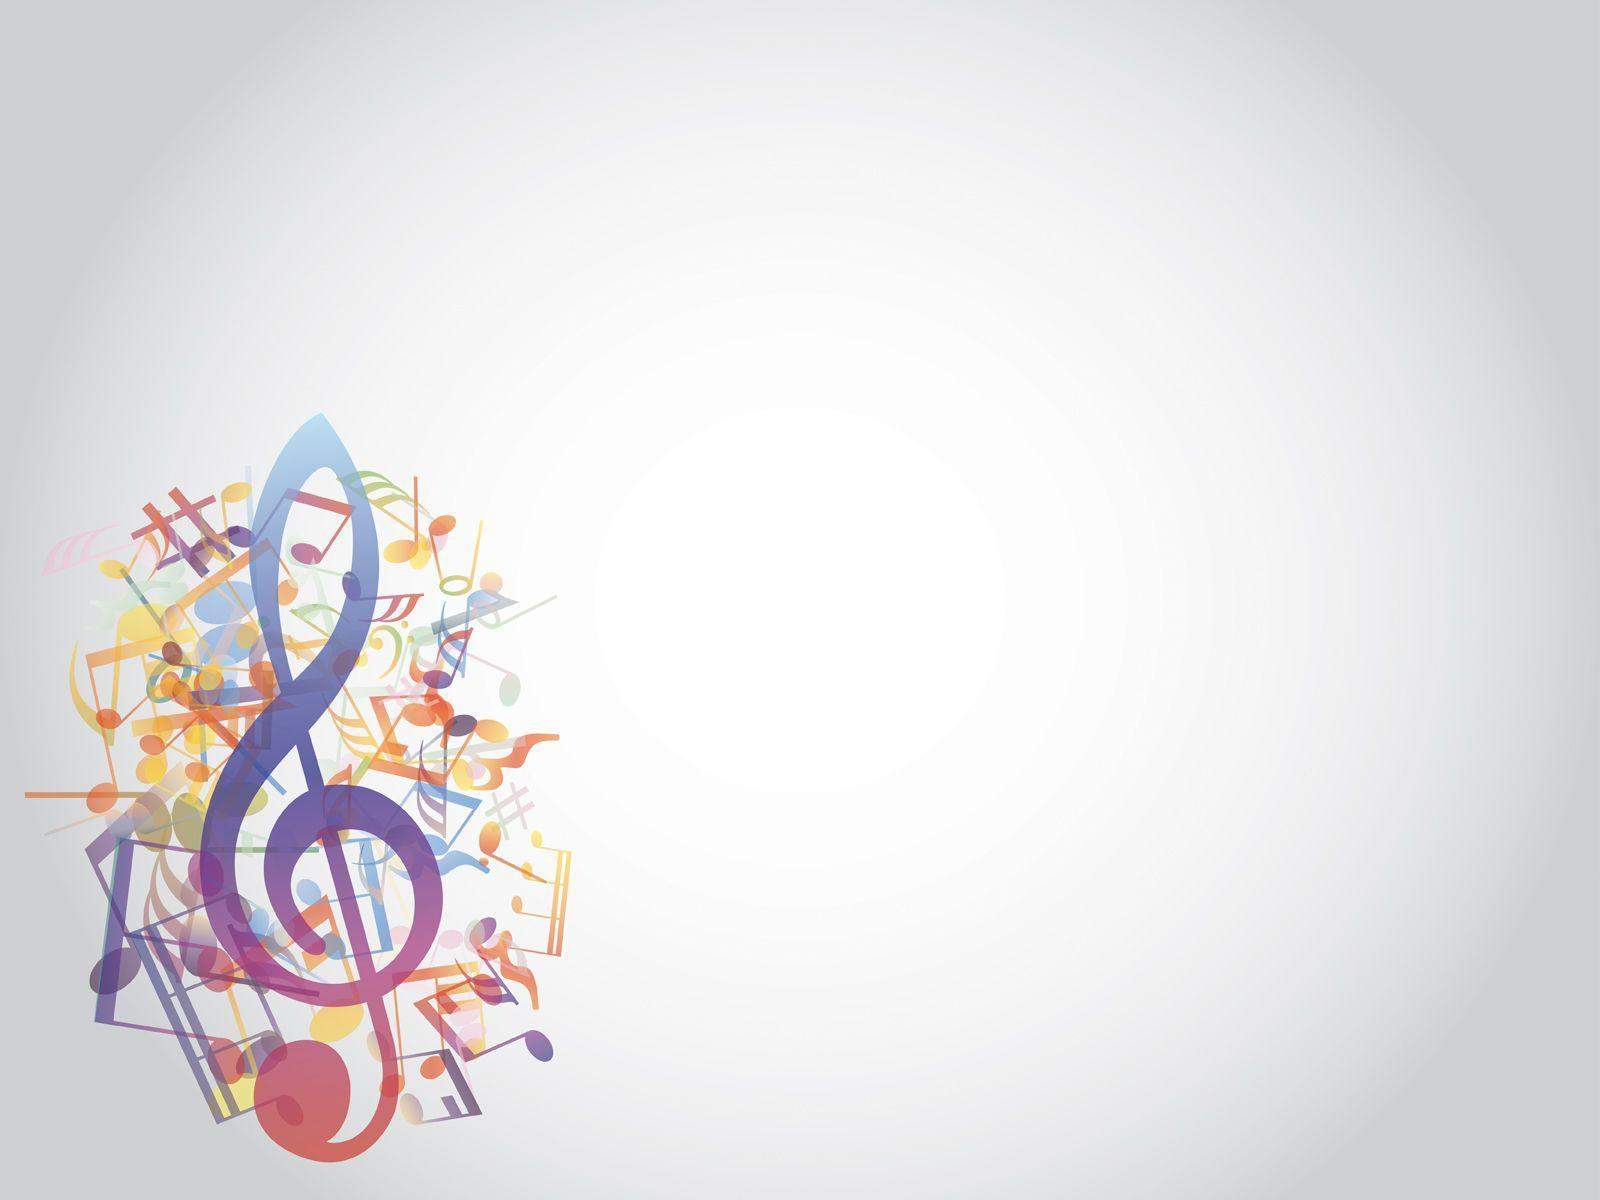 Music Notes Backgrounds 1600x1200